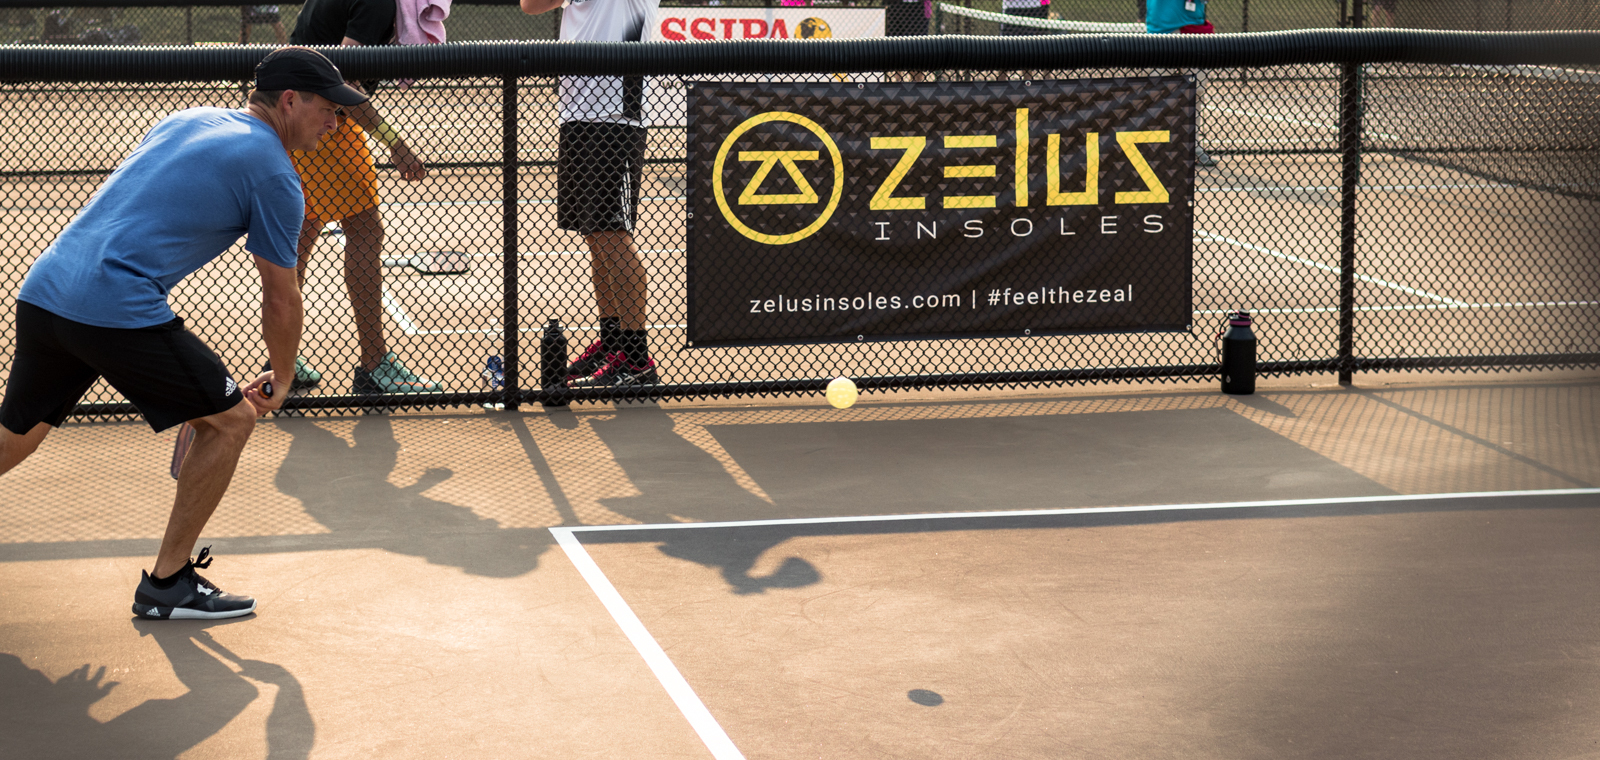 Zelus Insoles Becomes Official Insoles Partner of the USA Pickleball Association